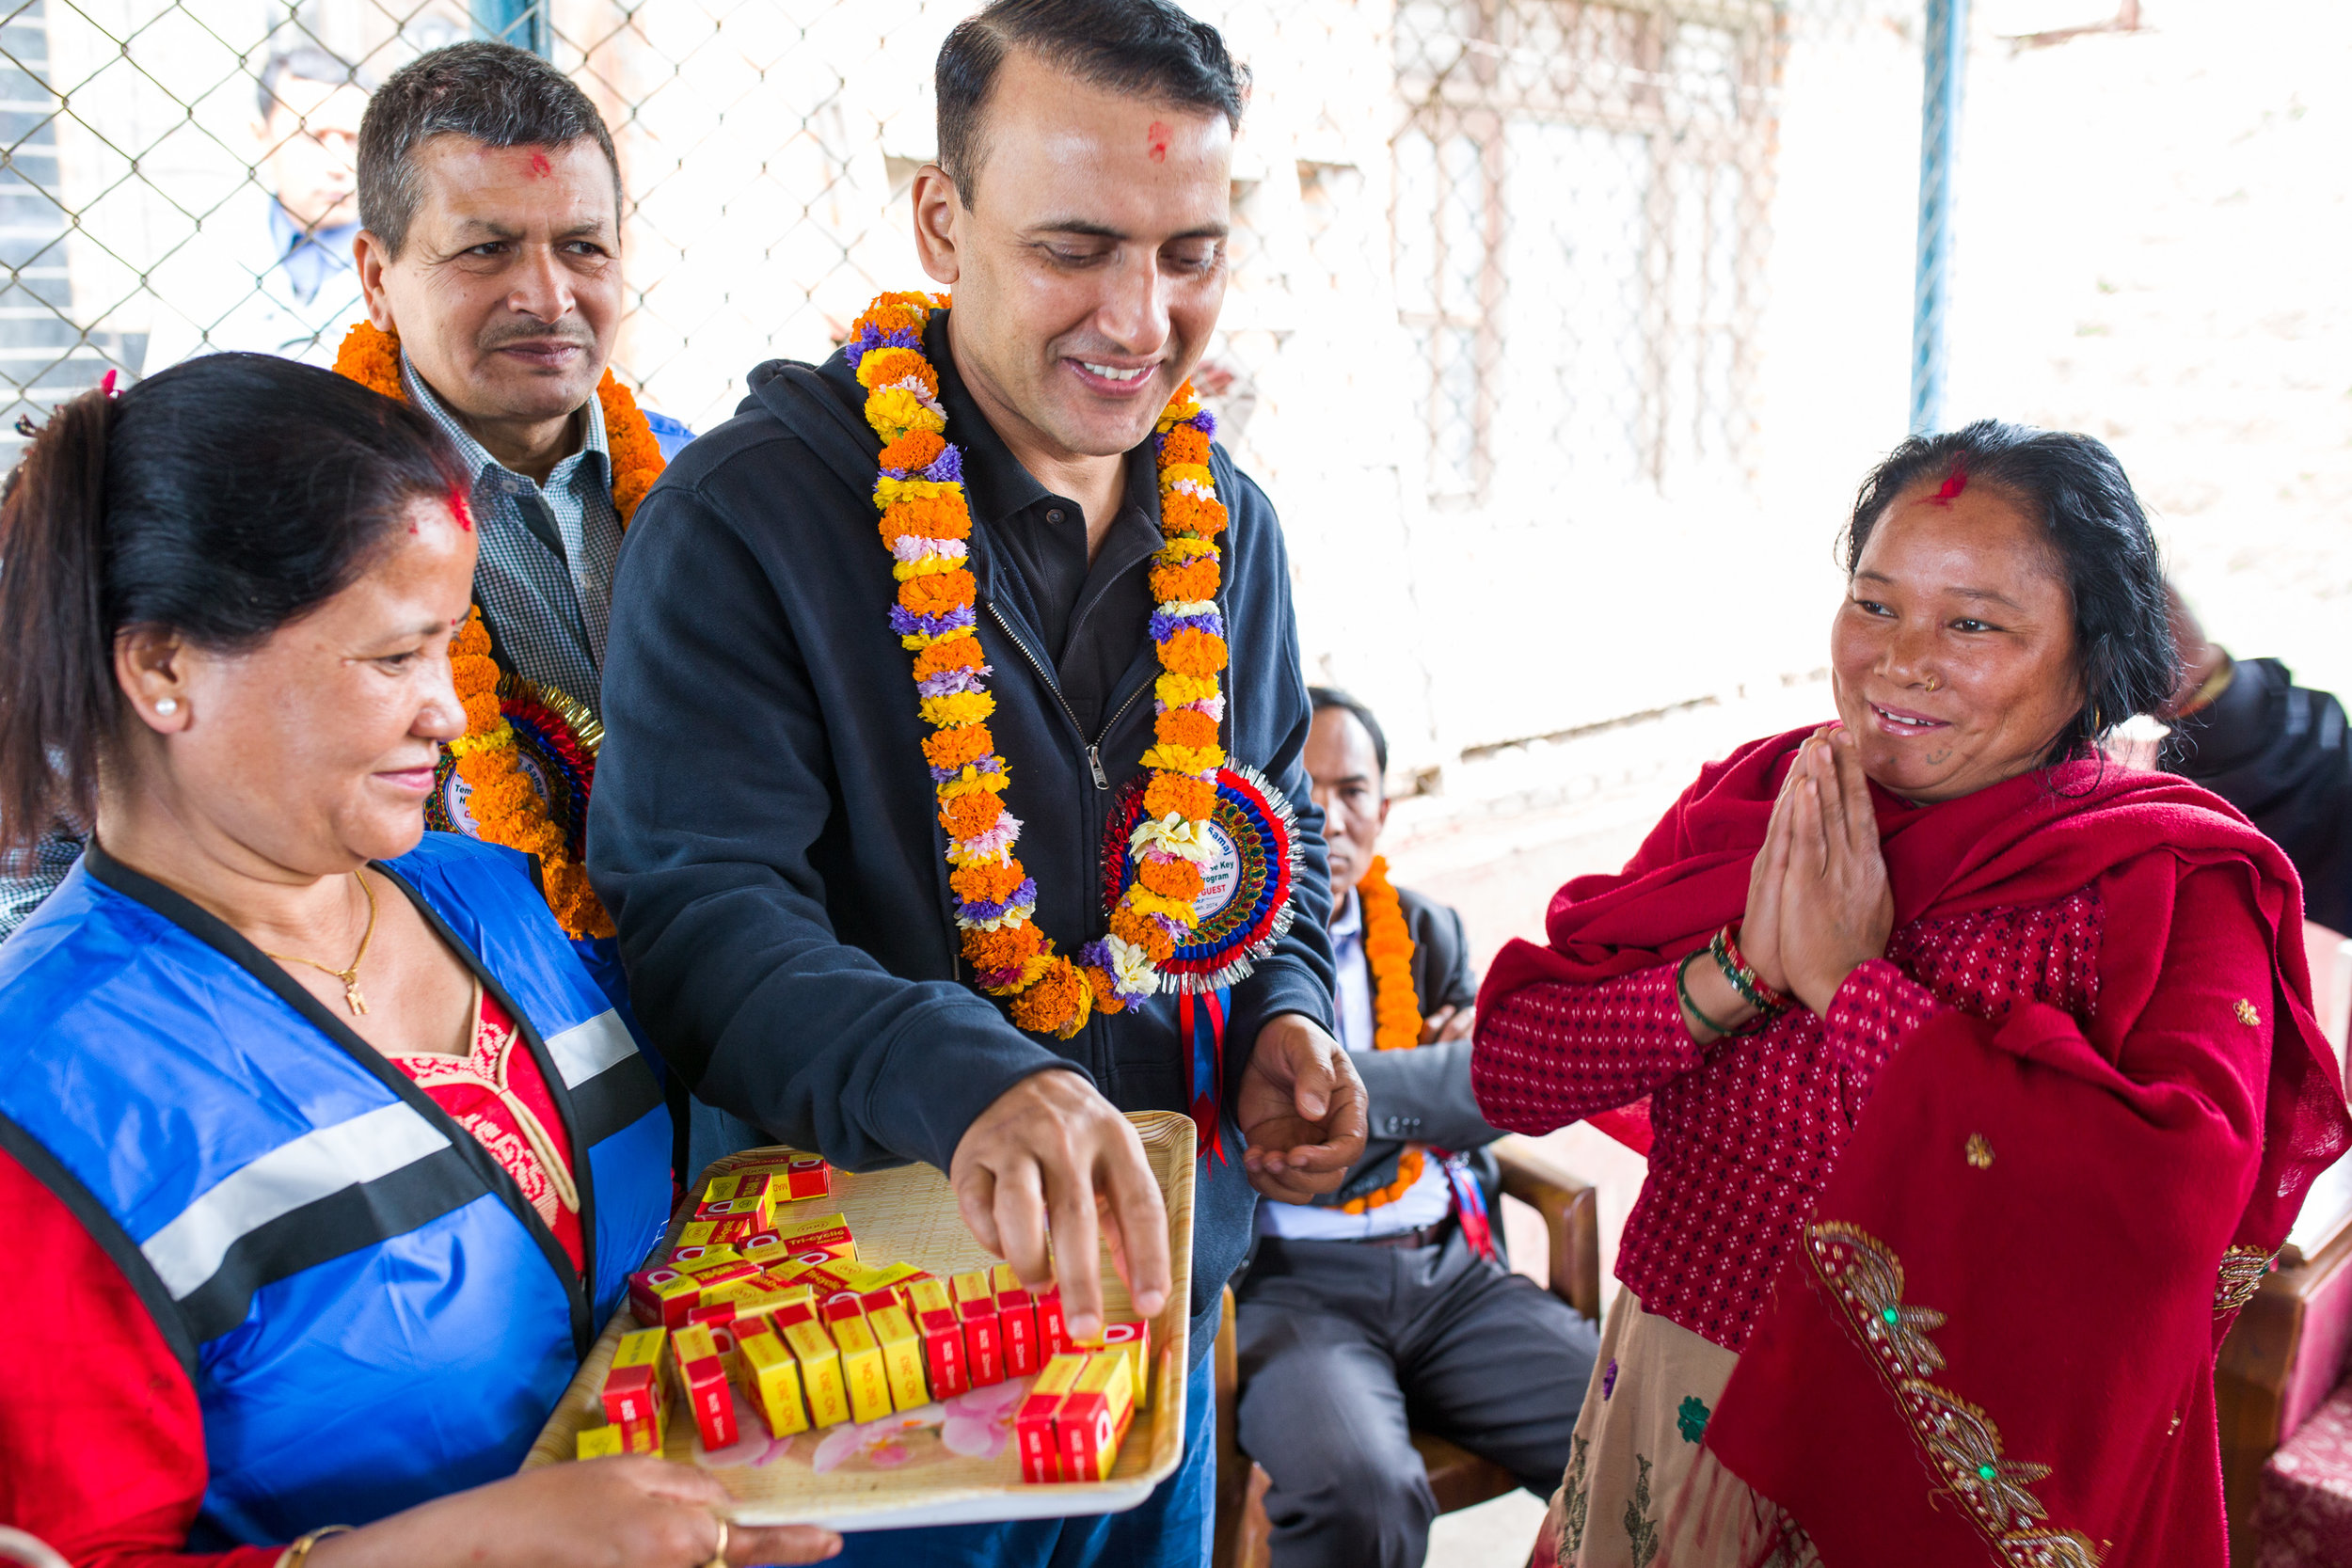 During a ceremony, Siddhi Aryal hands a symbolic key to one of the beneficiaries of the house-building project he and his wife Smriti helped to lead together with Nepali friends. Behind Siddhi is Pralhad KC, the Chairman of the Kavre Service Society (KSS) that oversaw construction of the homes.